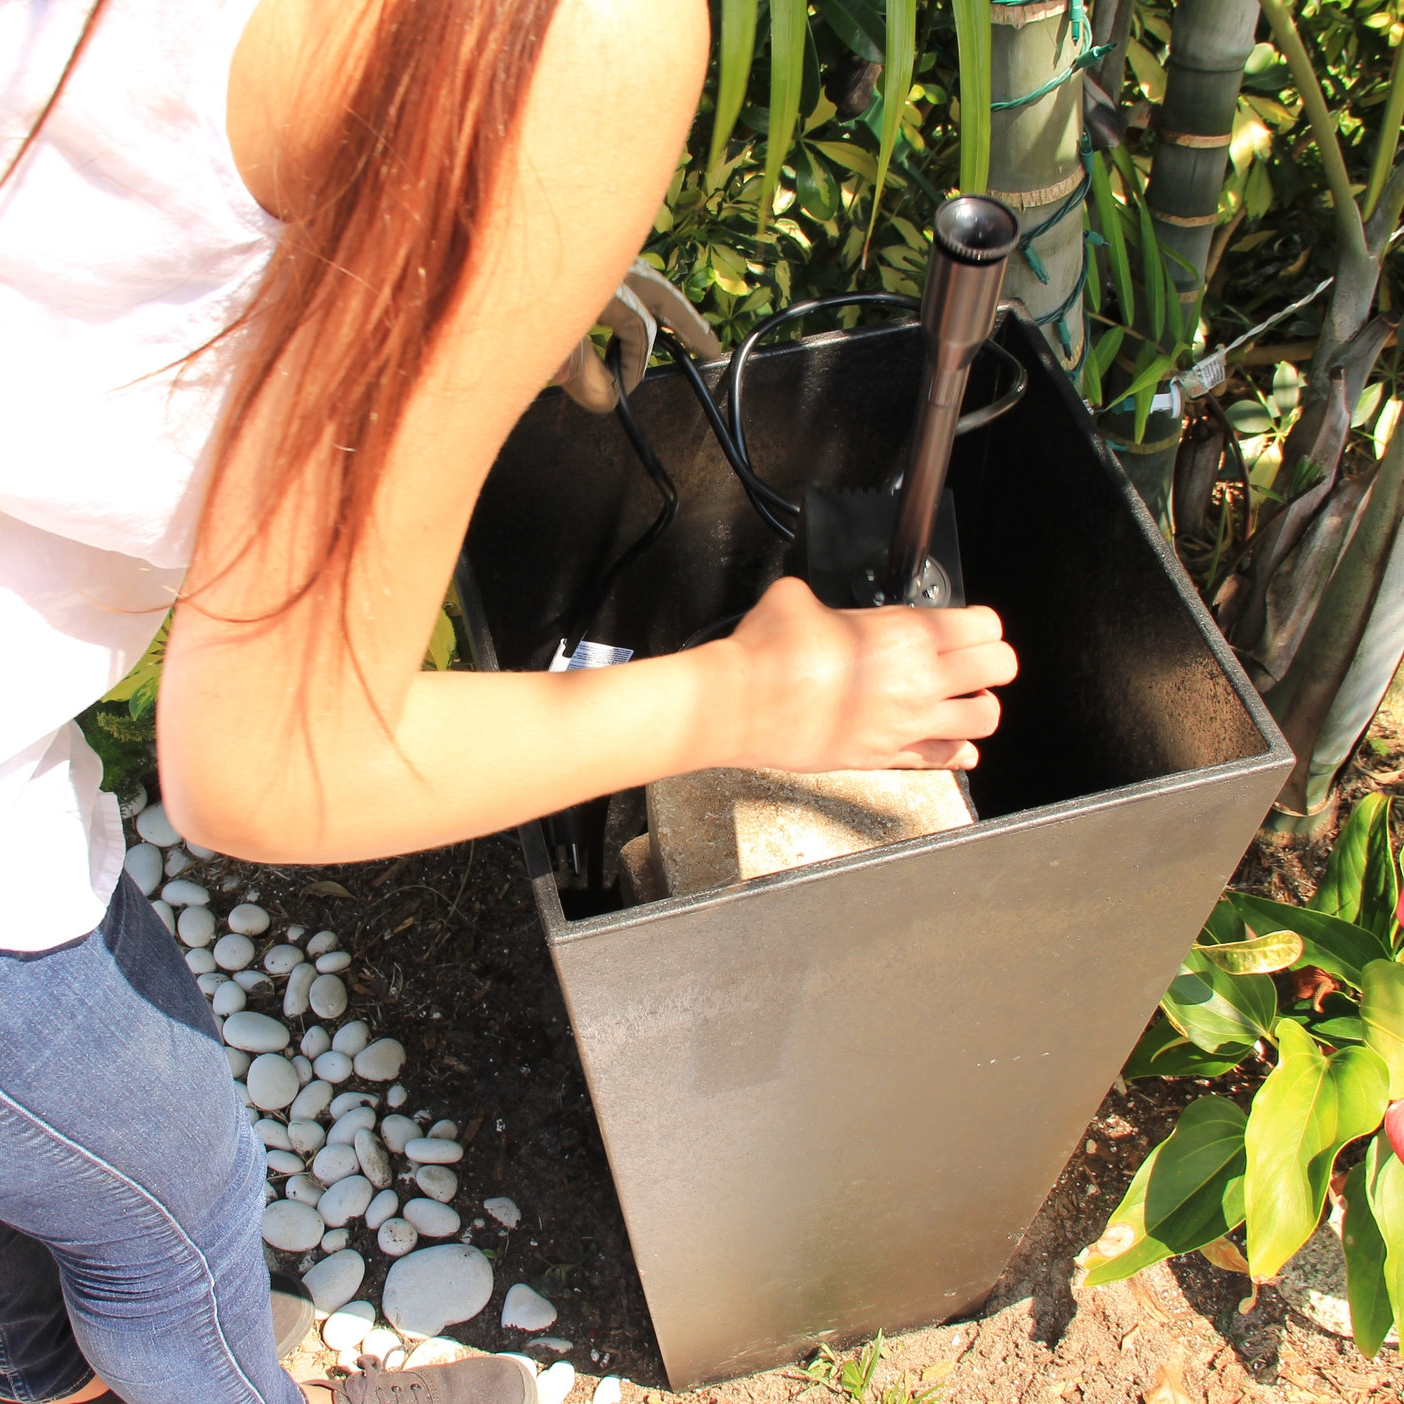 Step 4 - Assemble the Container Fountain Kit with Light and place it on the pavers. Run the cord down the planter and out the hole in the back.